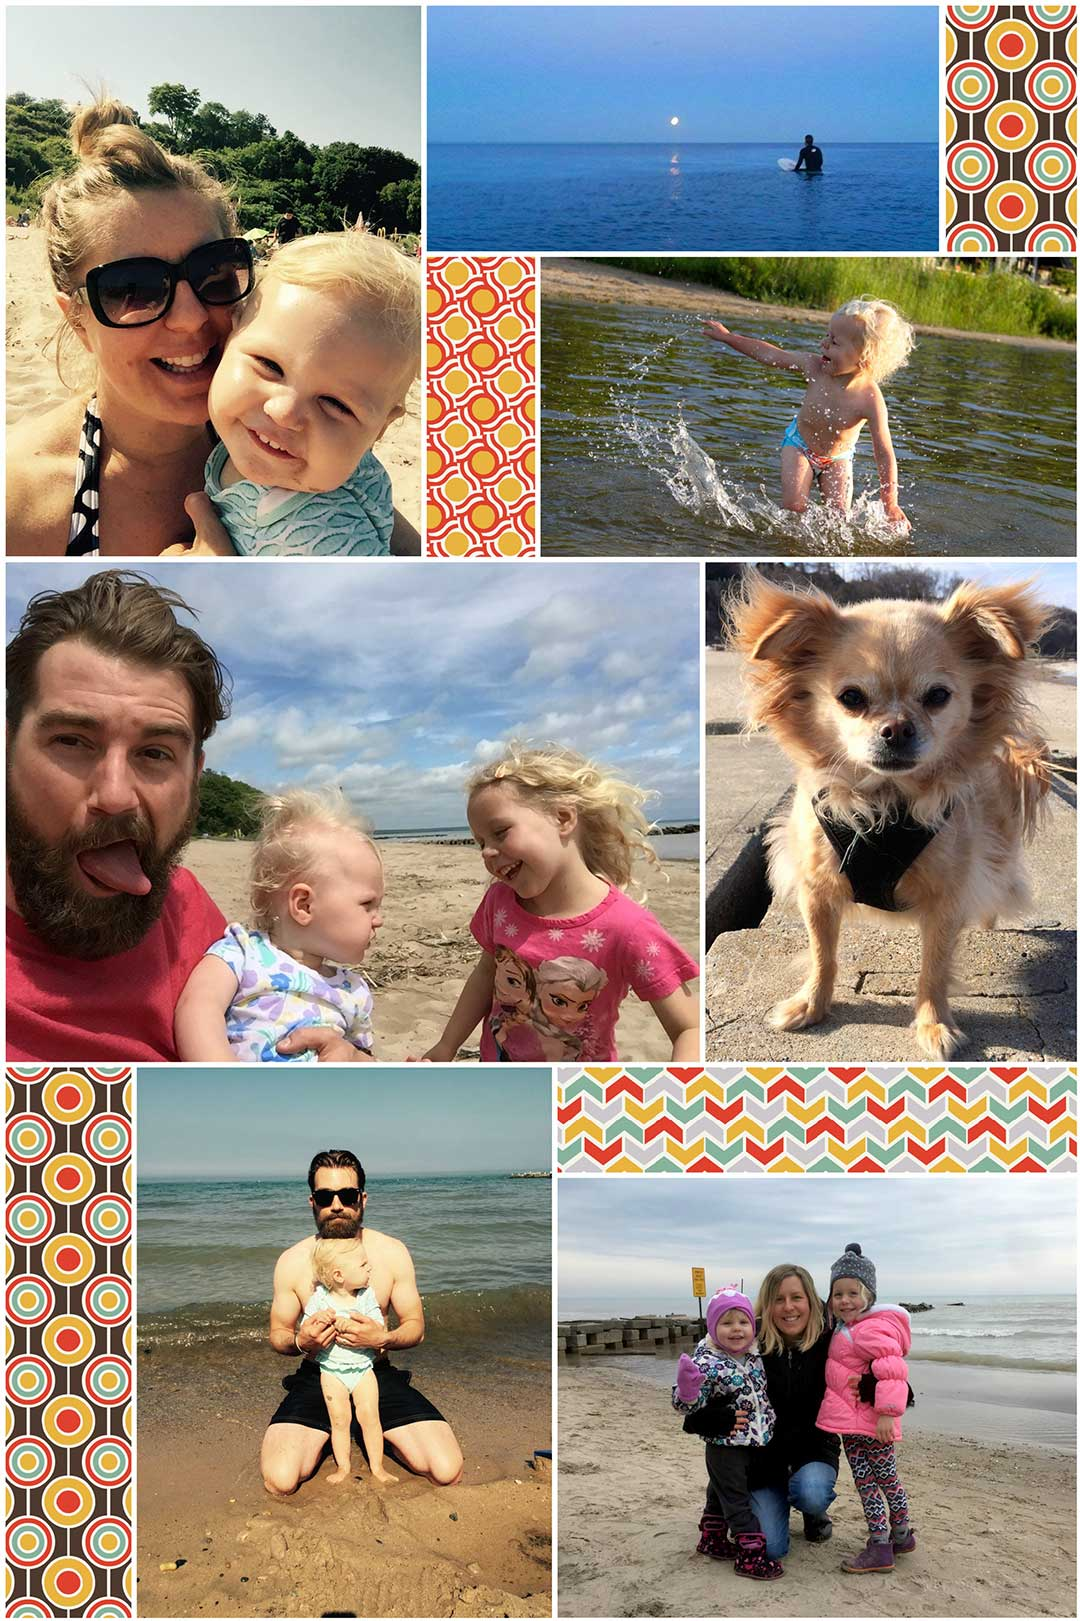 Artists, Katy Wick and Bodin Sterba with their two daughters, Gemma and Edie, and Lulu the wonderpup spending time by their beloved inland sea.